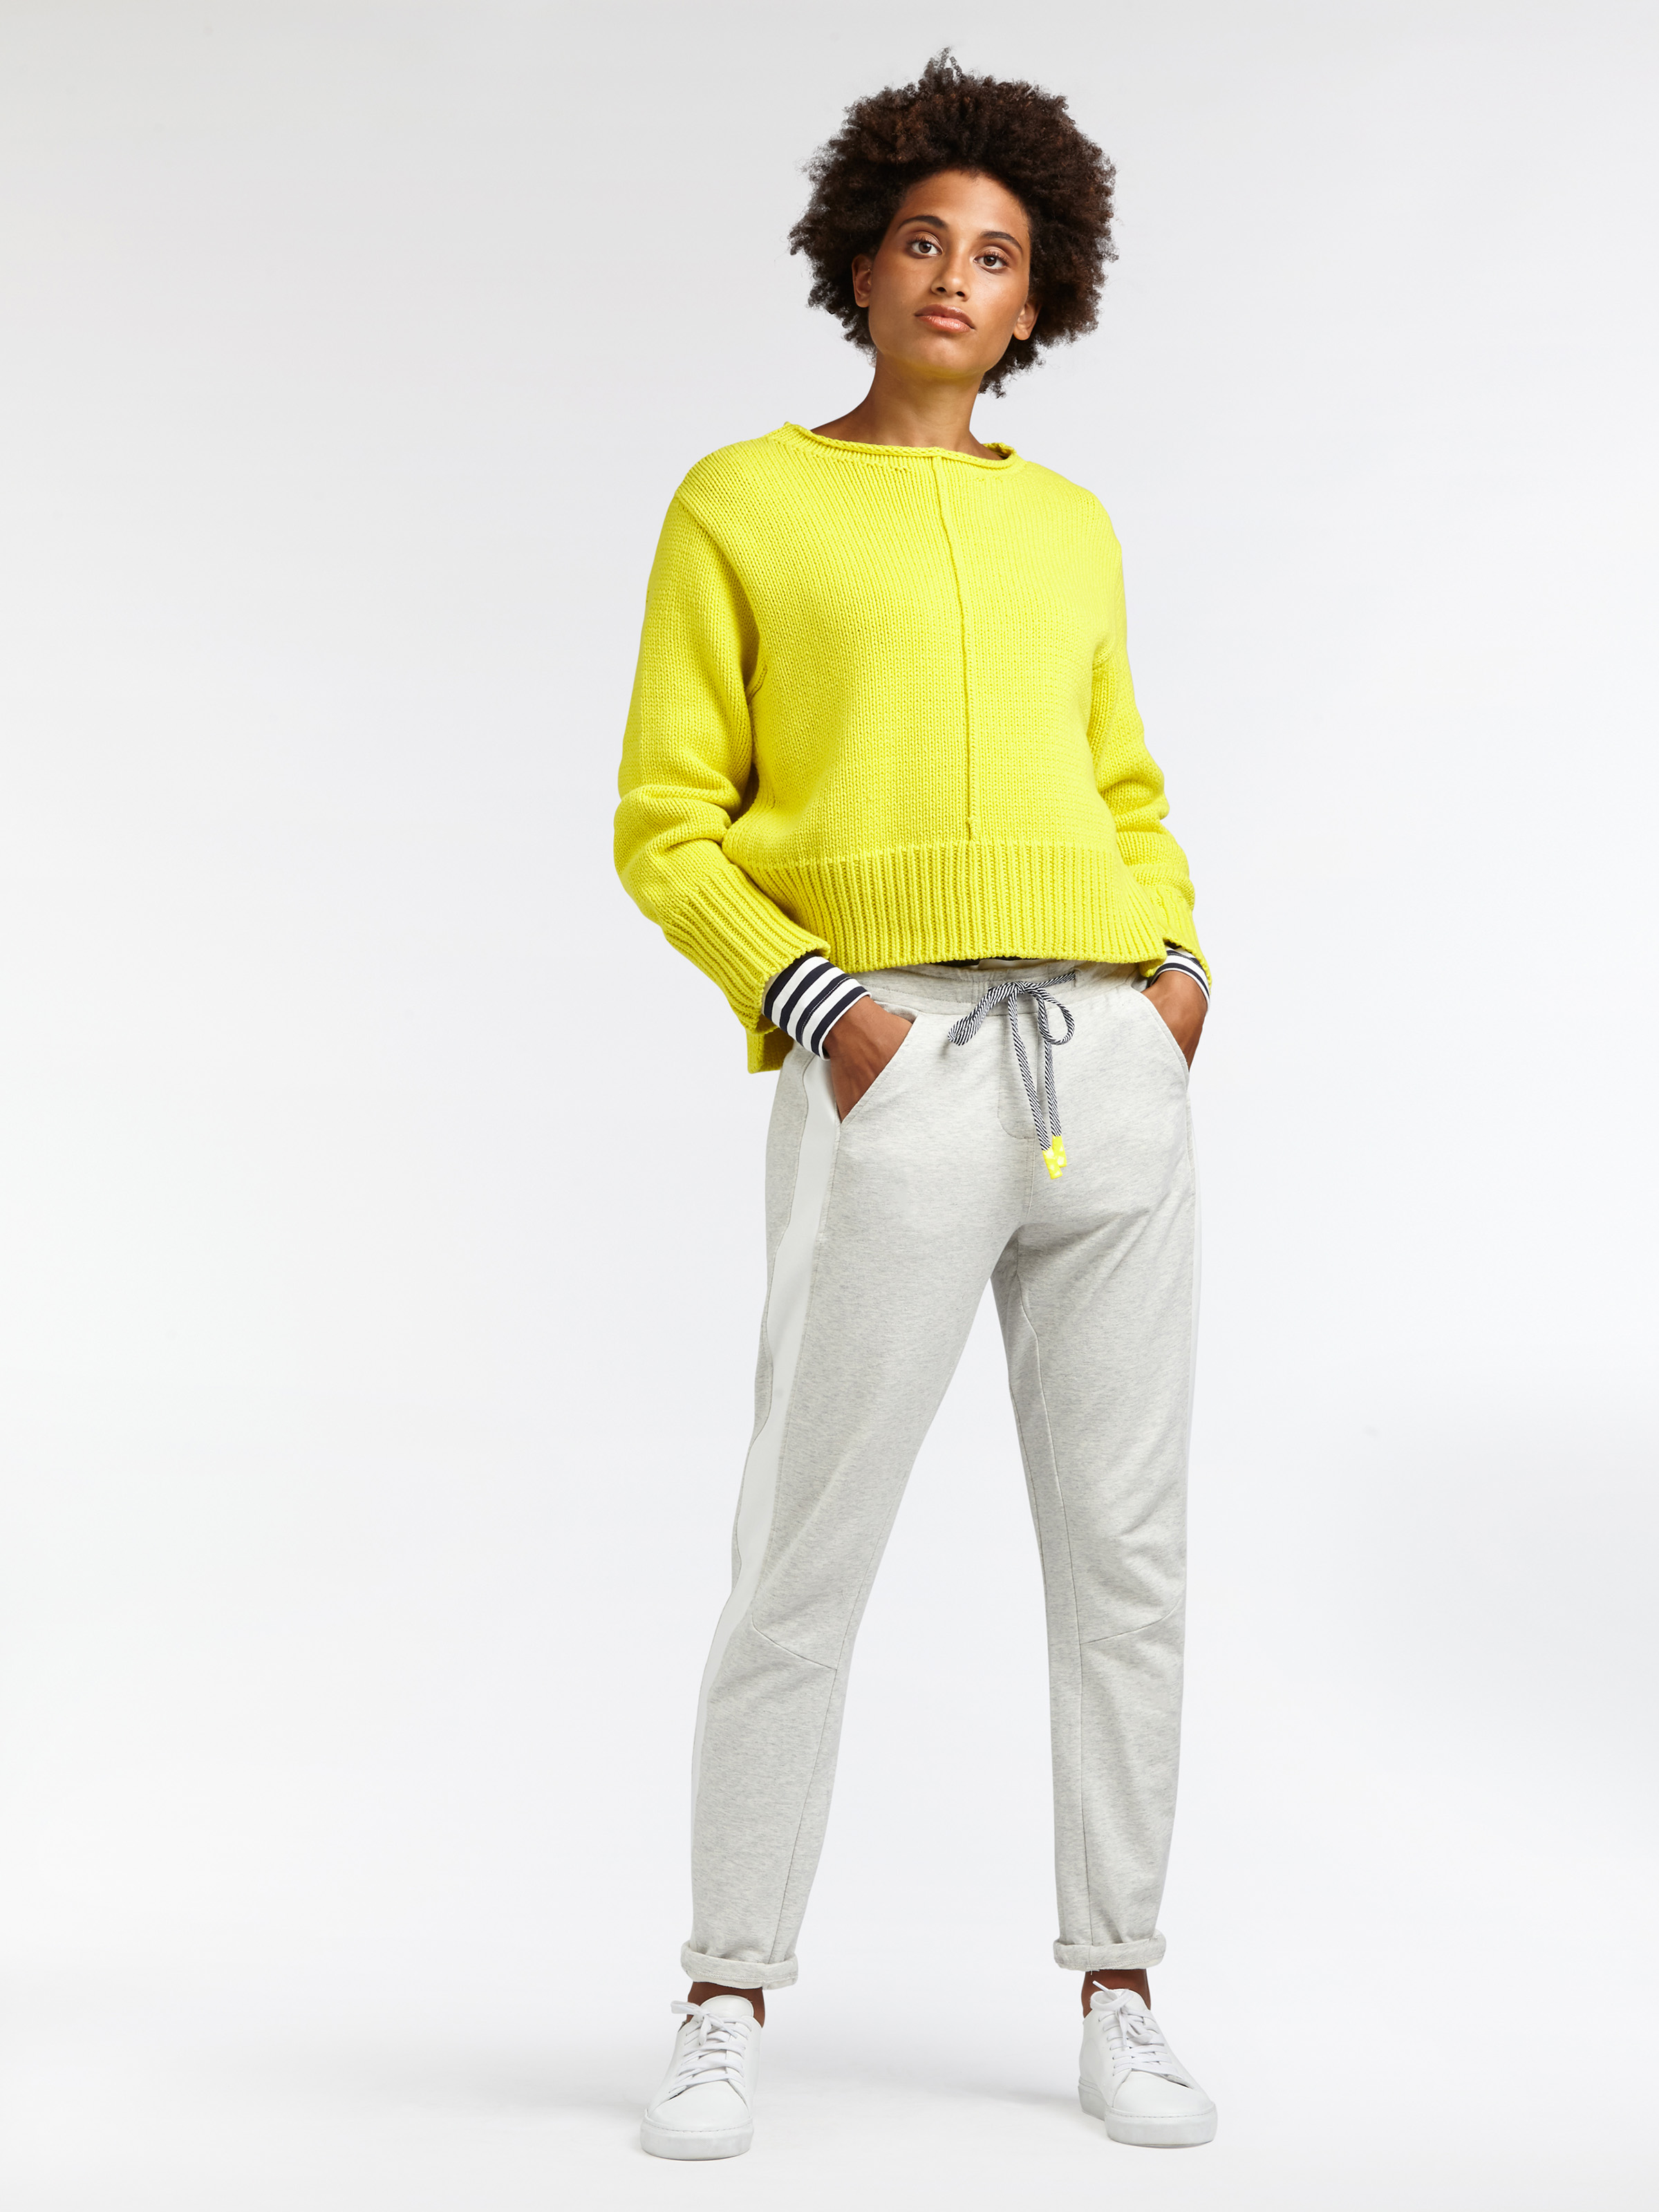 Integrate yellow into your wardrobe and invite it to brighten up any look—it'll deliver.